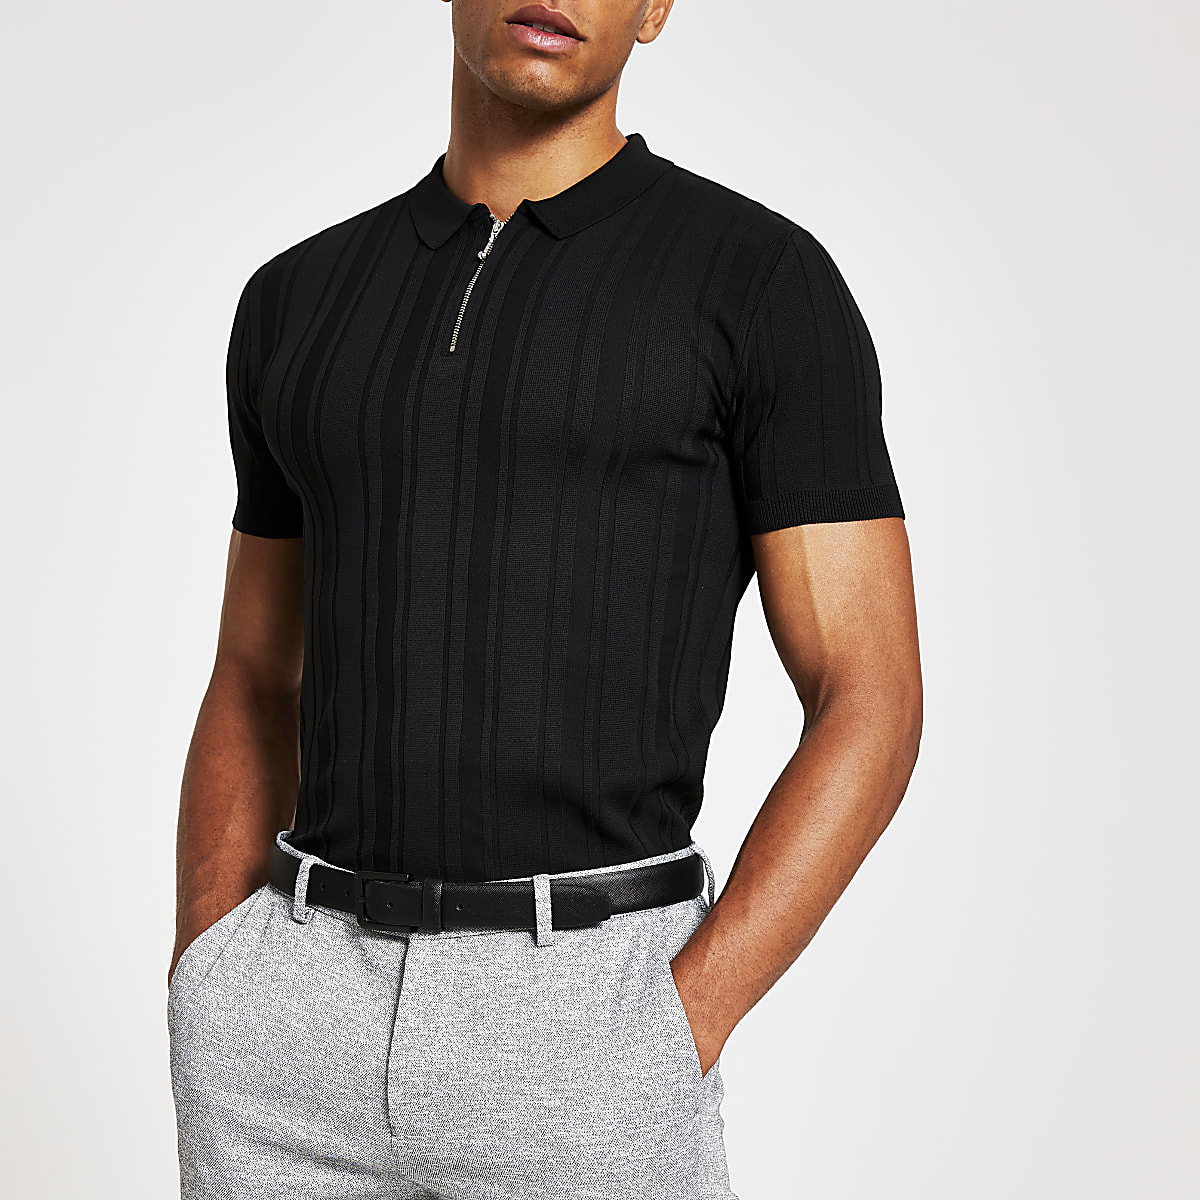 Black ribbed knit muscle fit polo shirt